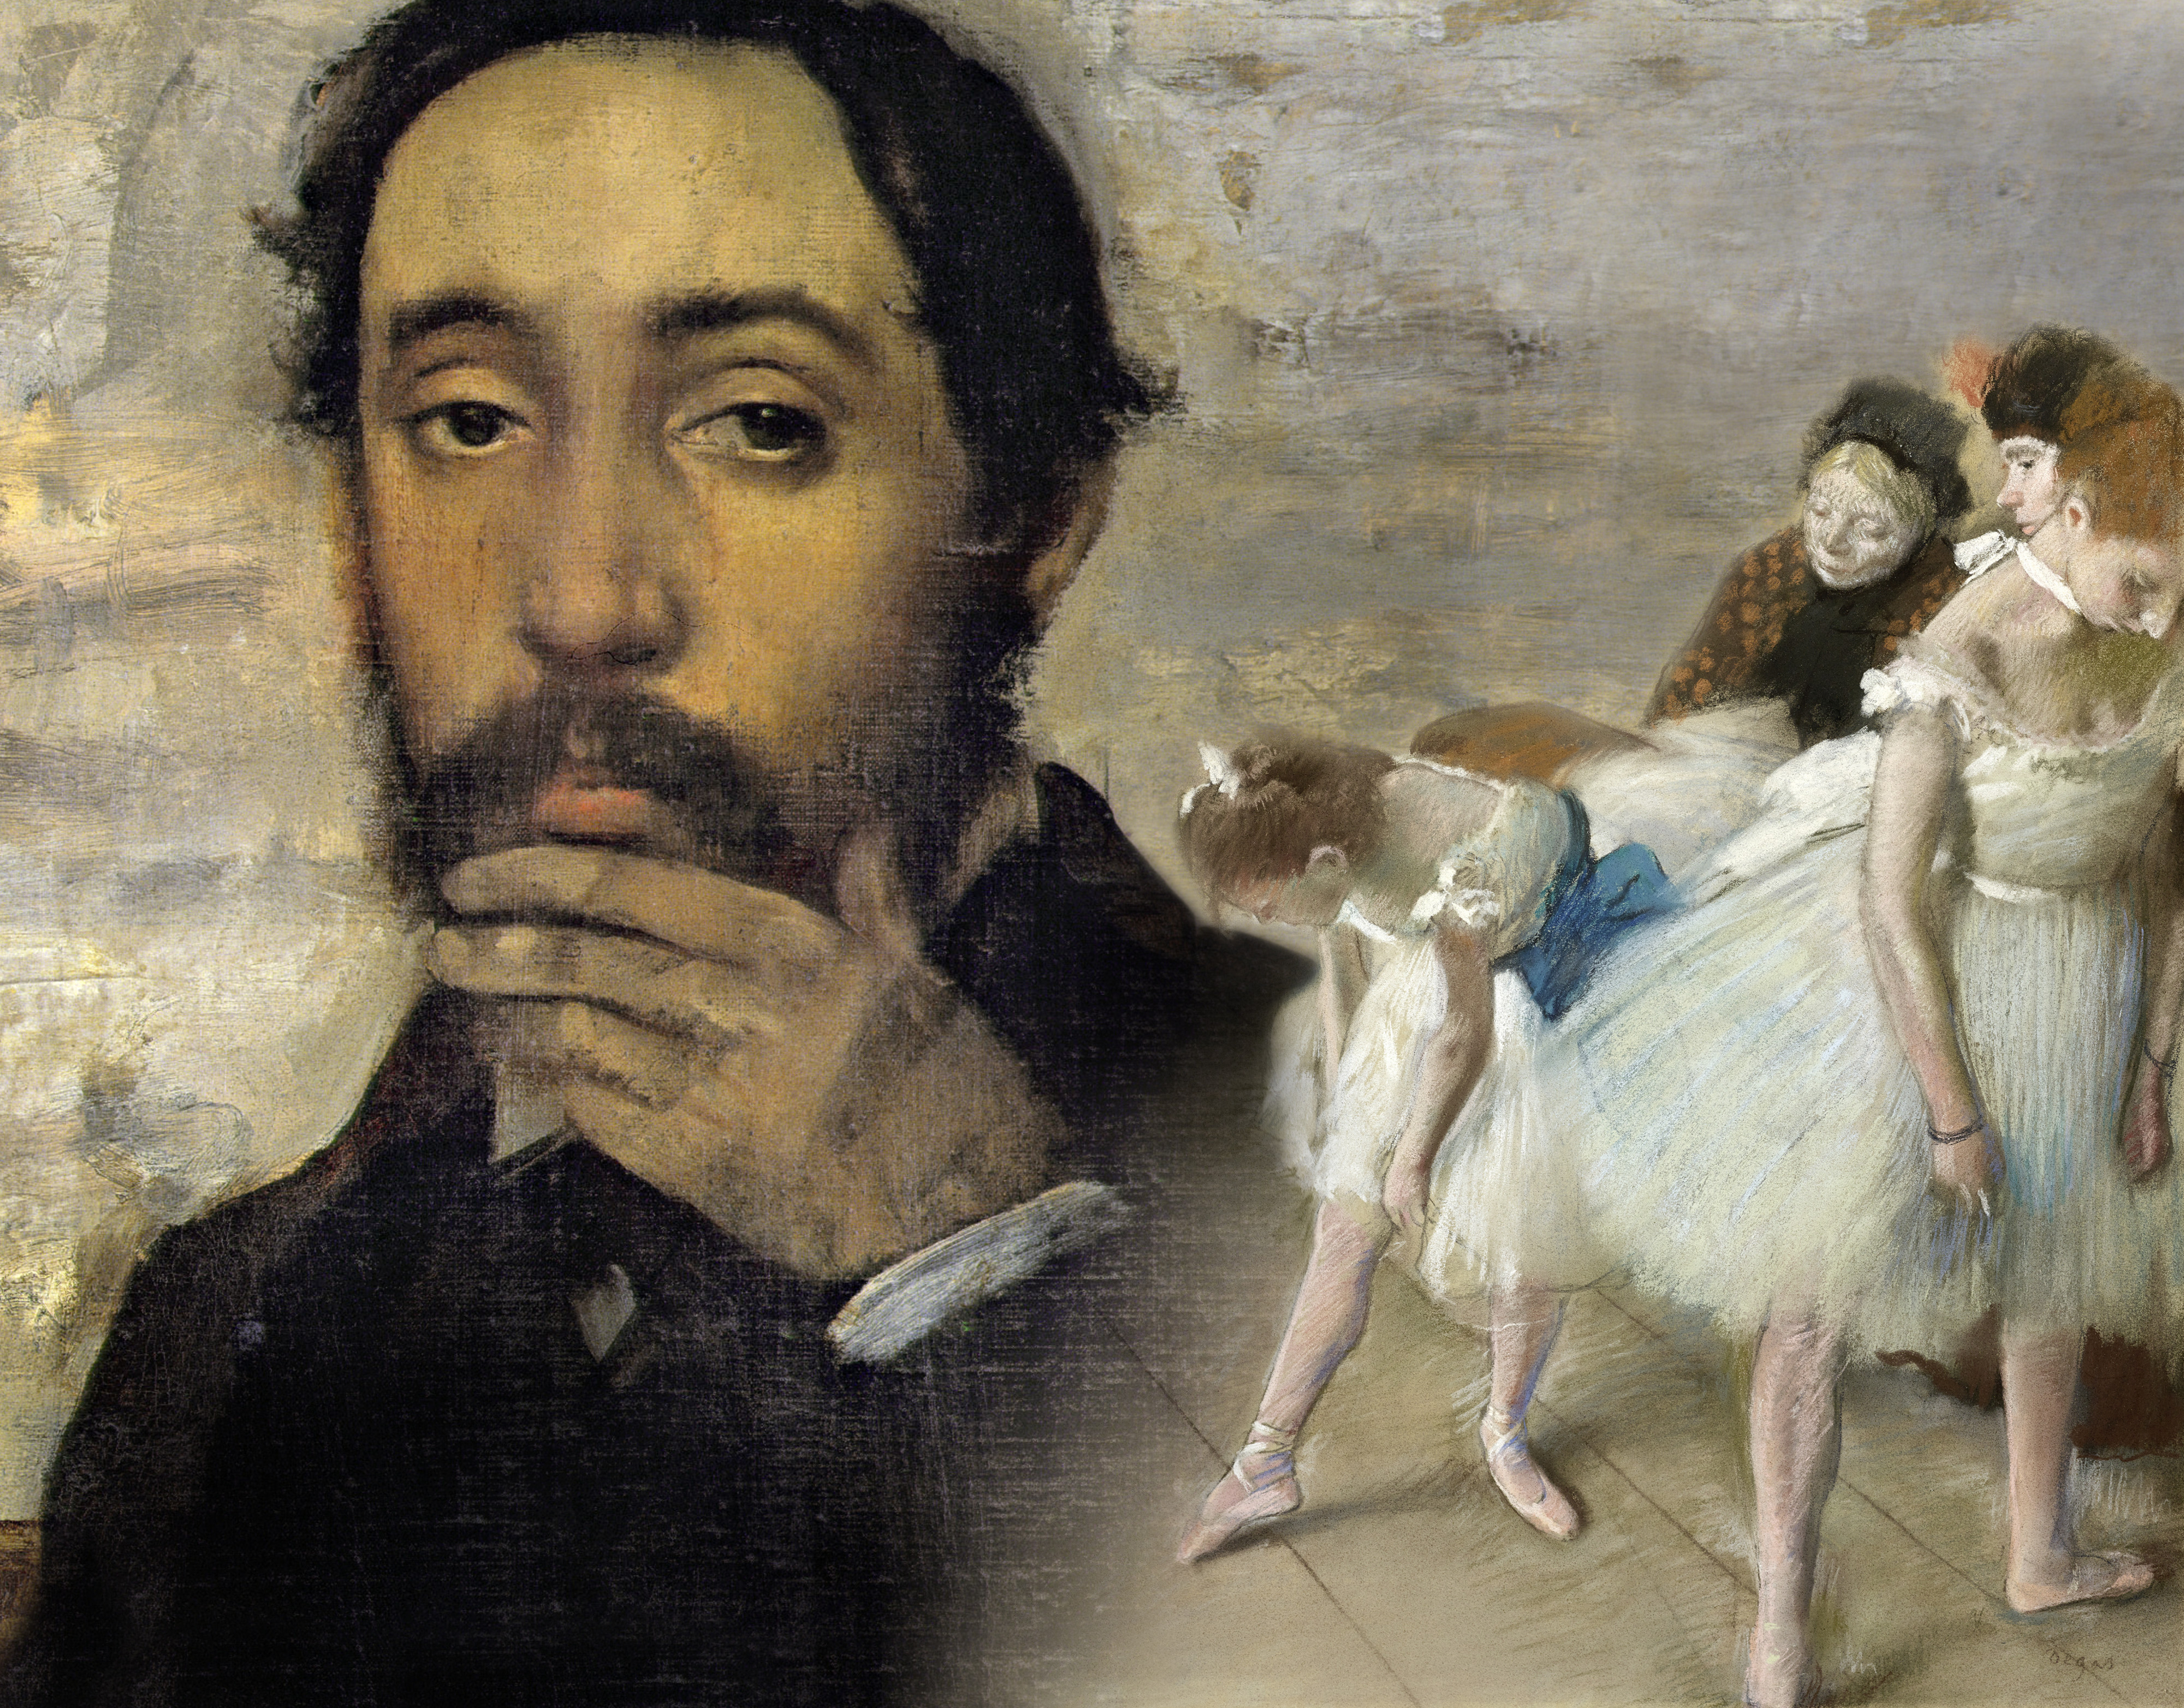 Degas: Passion for Perfection: Scene Image 3